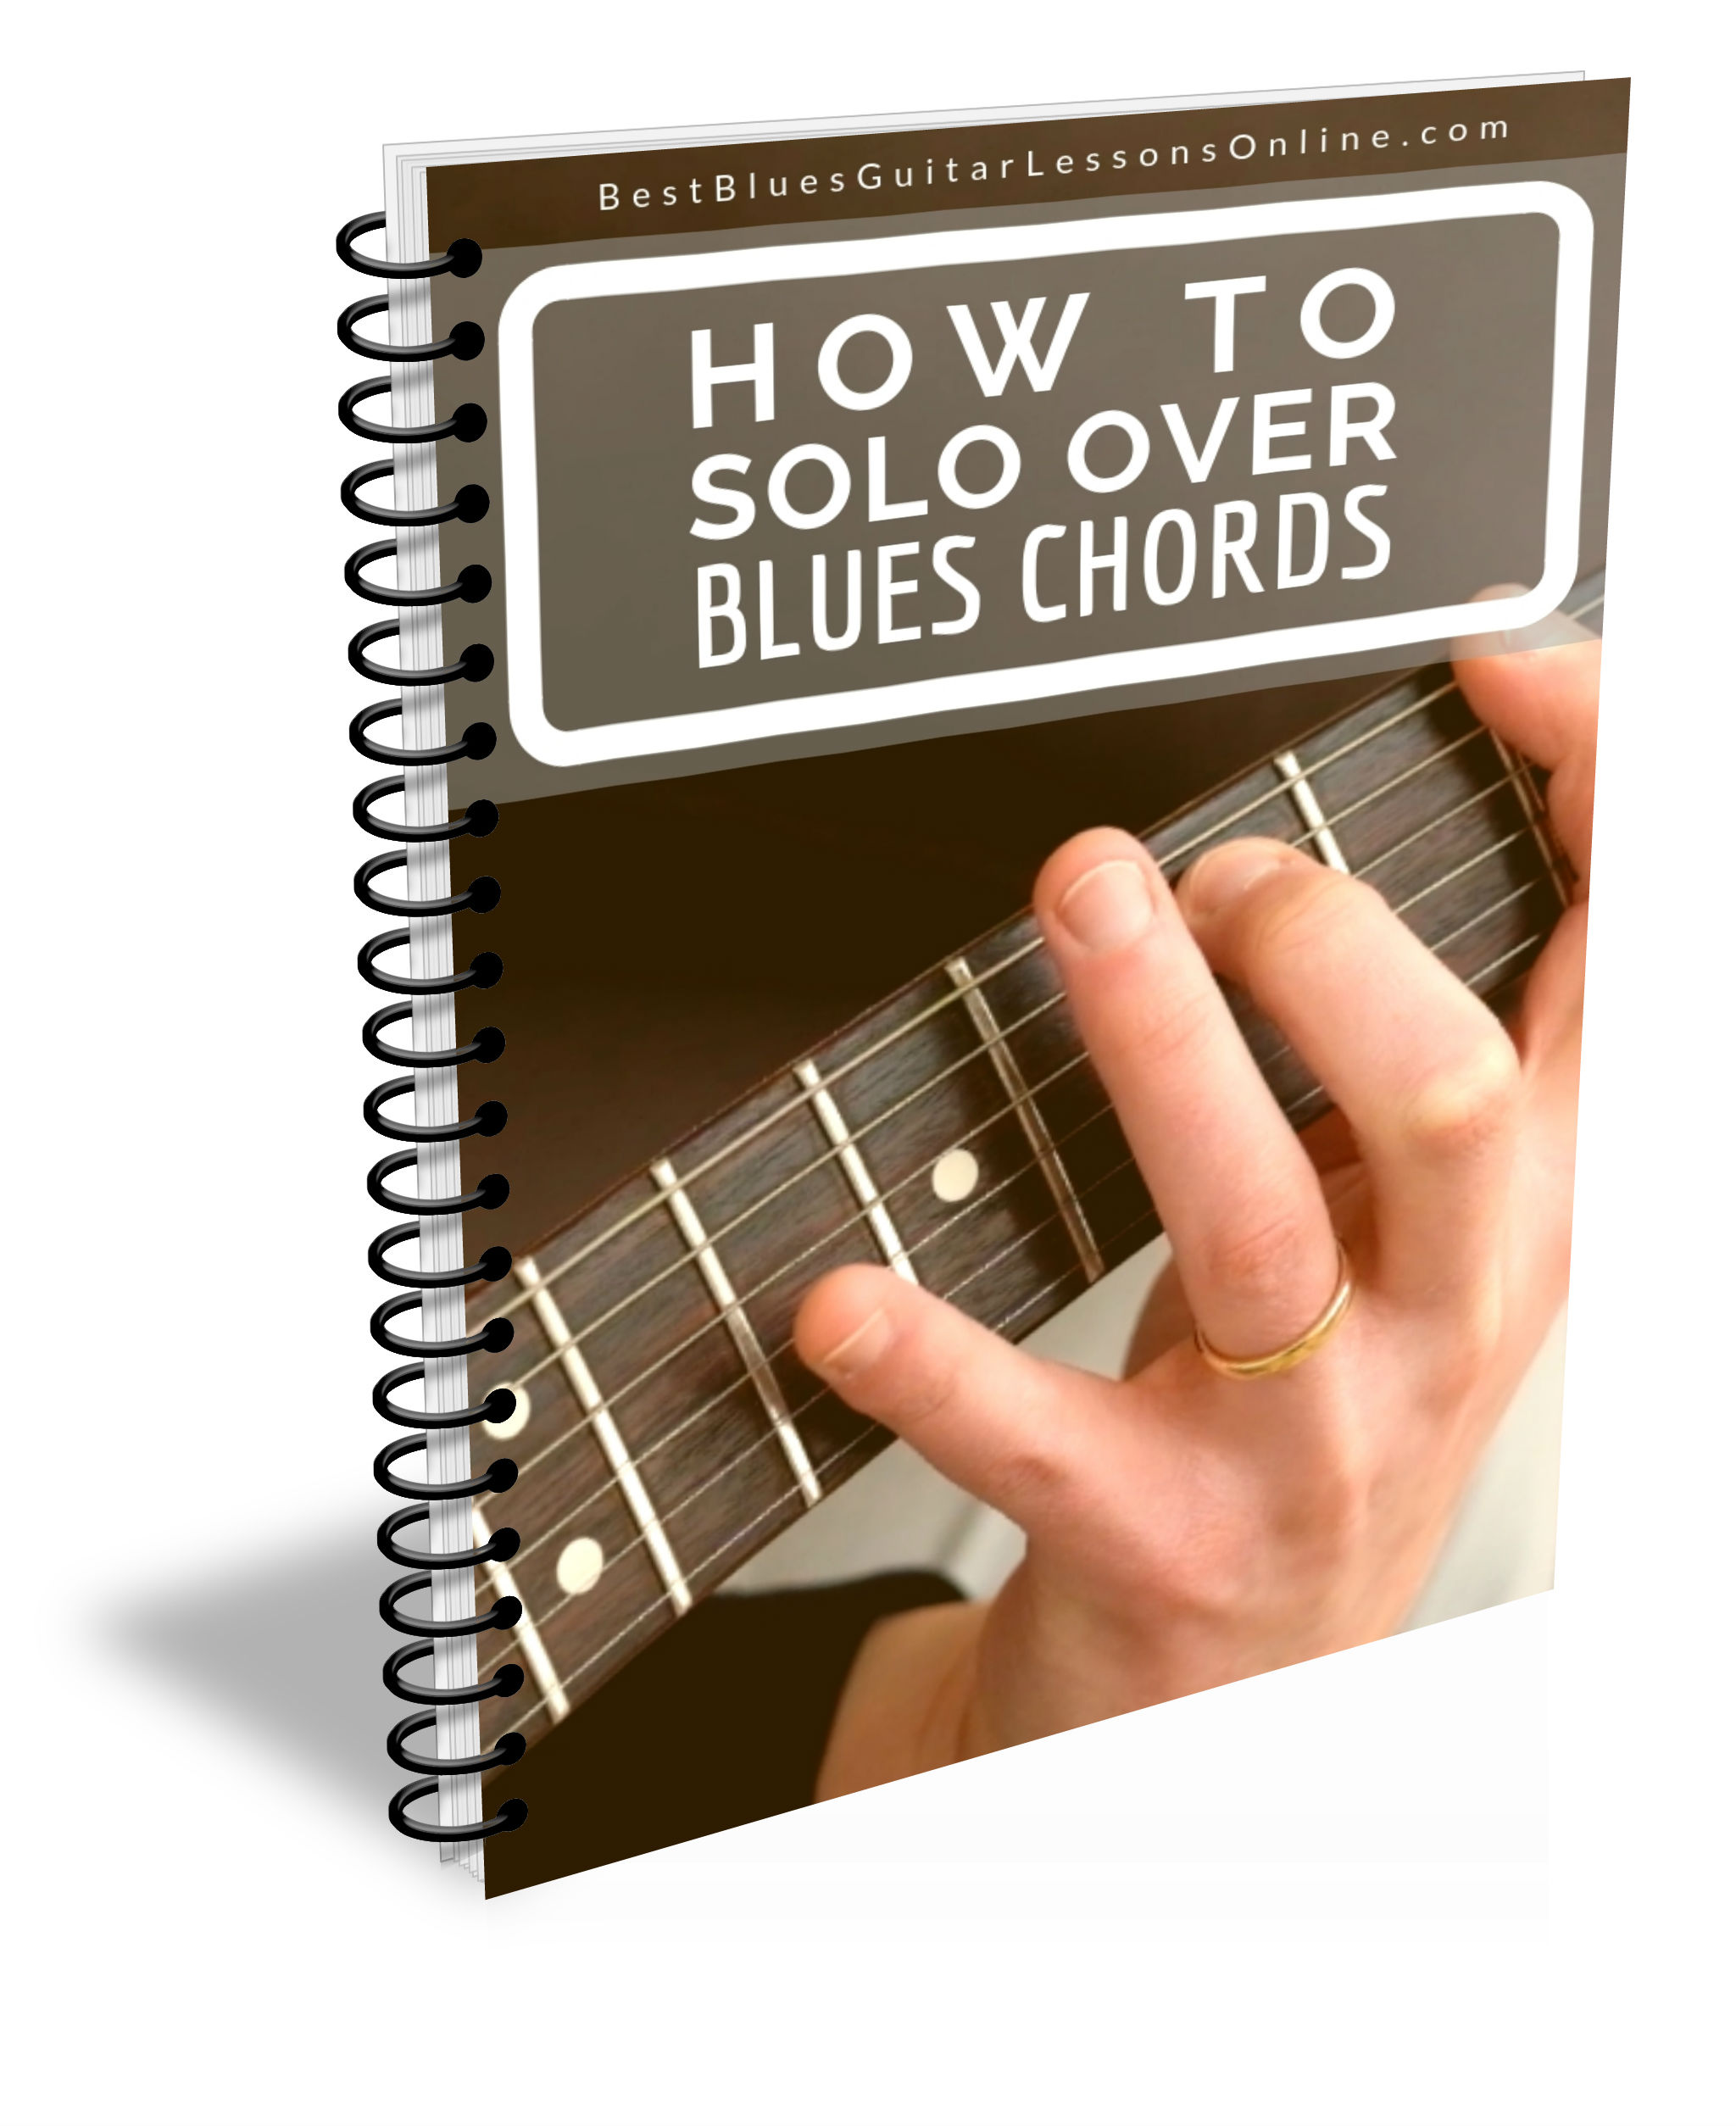 Blues Guitar Resources